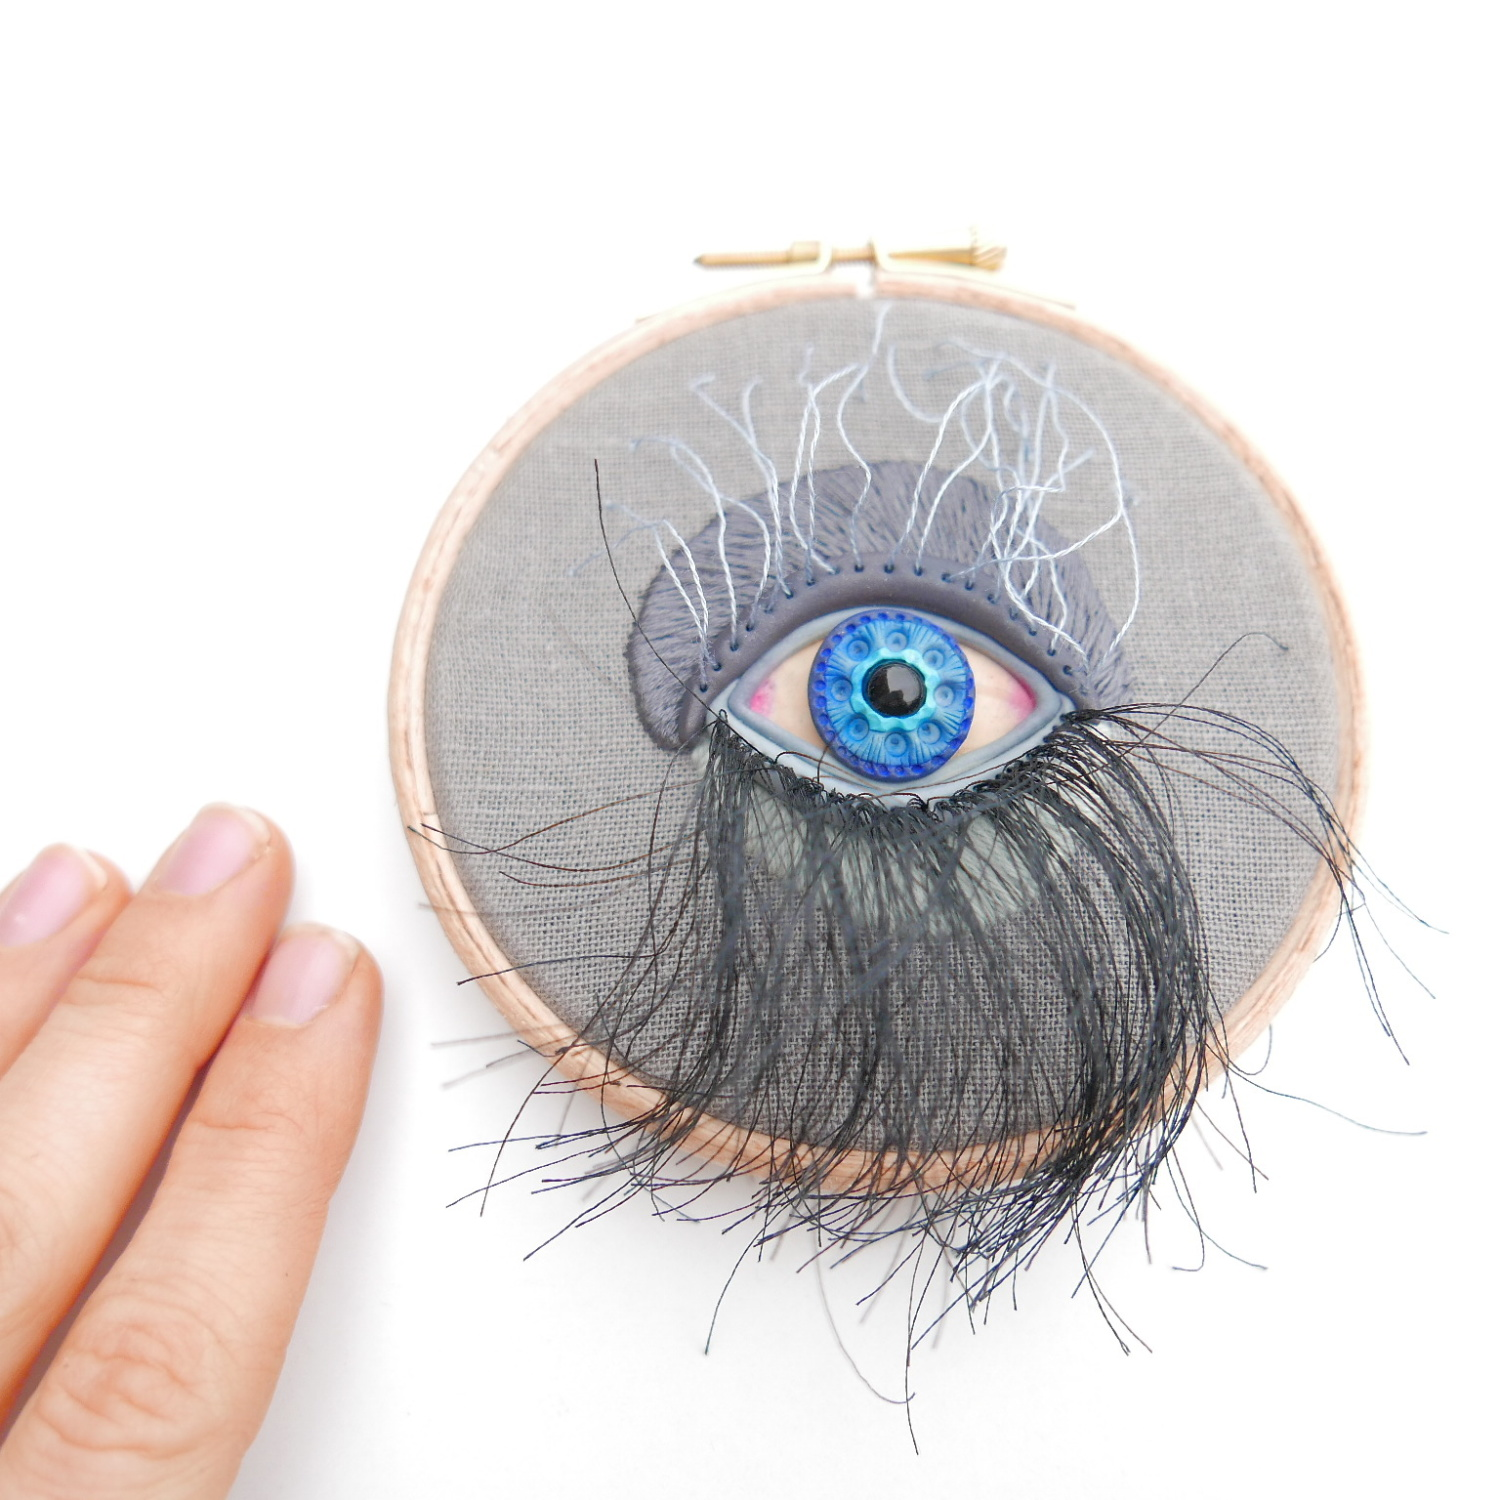 mixed media embroidery